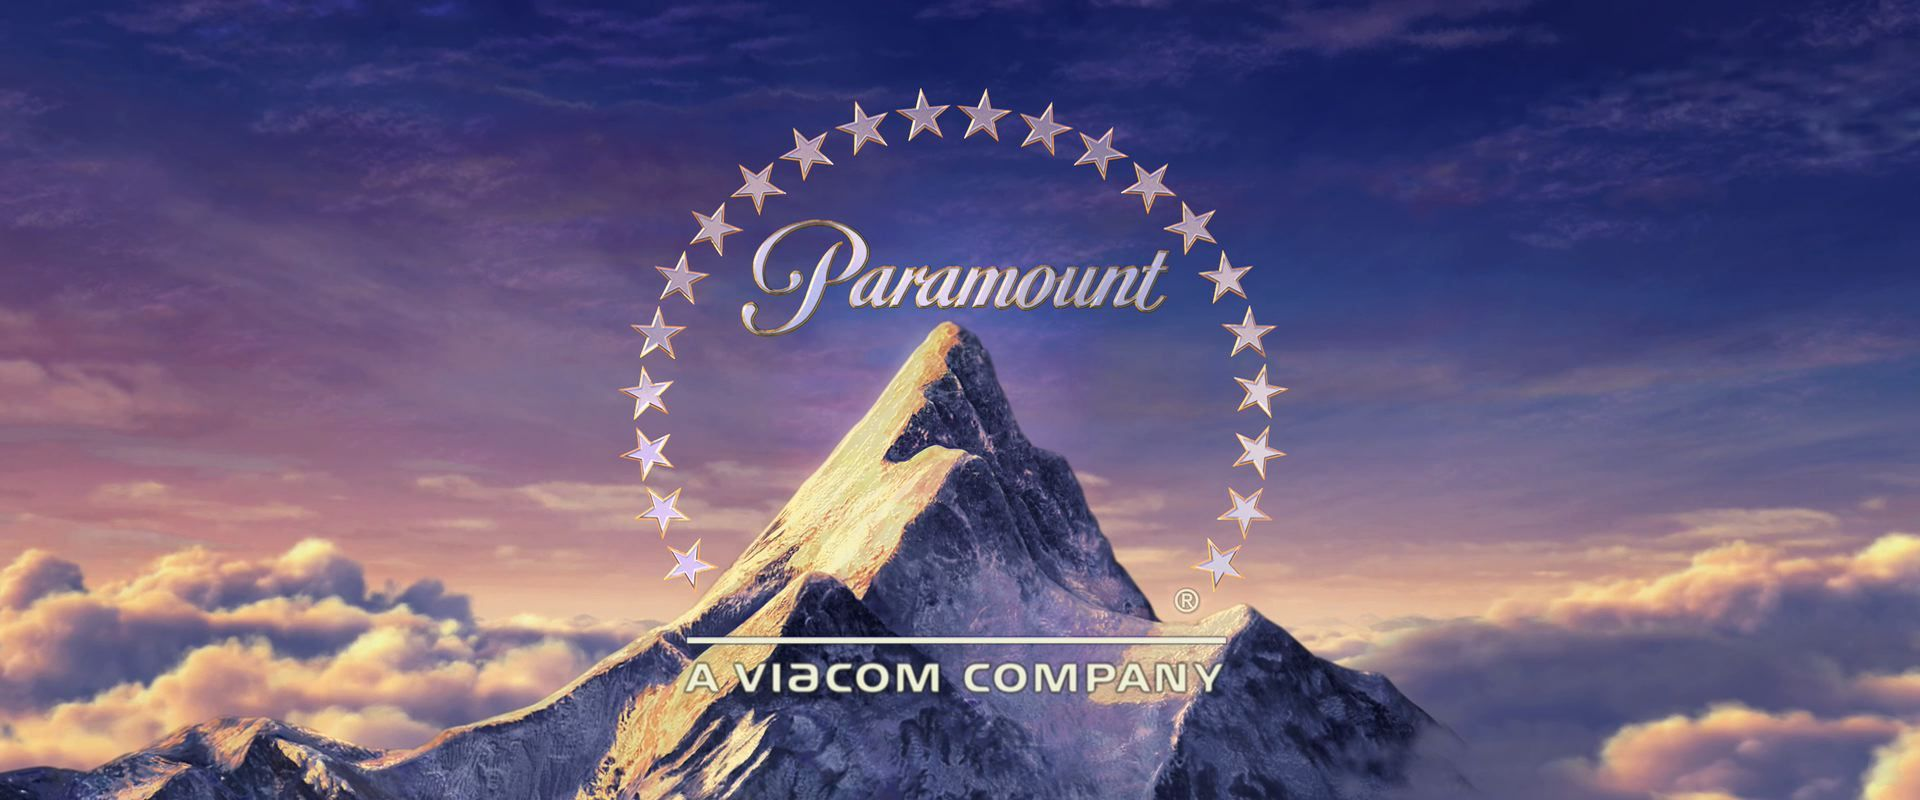 Paramount Pictures logo with new Viacom byline.jpg.